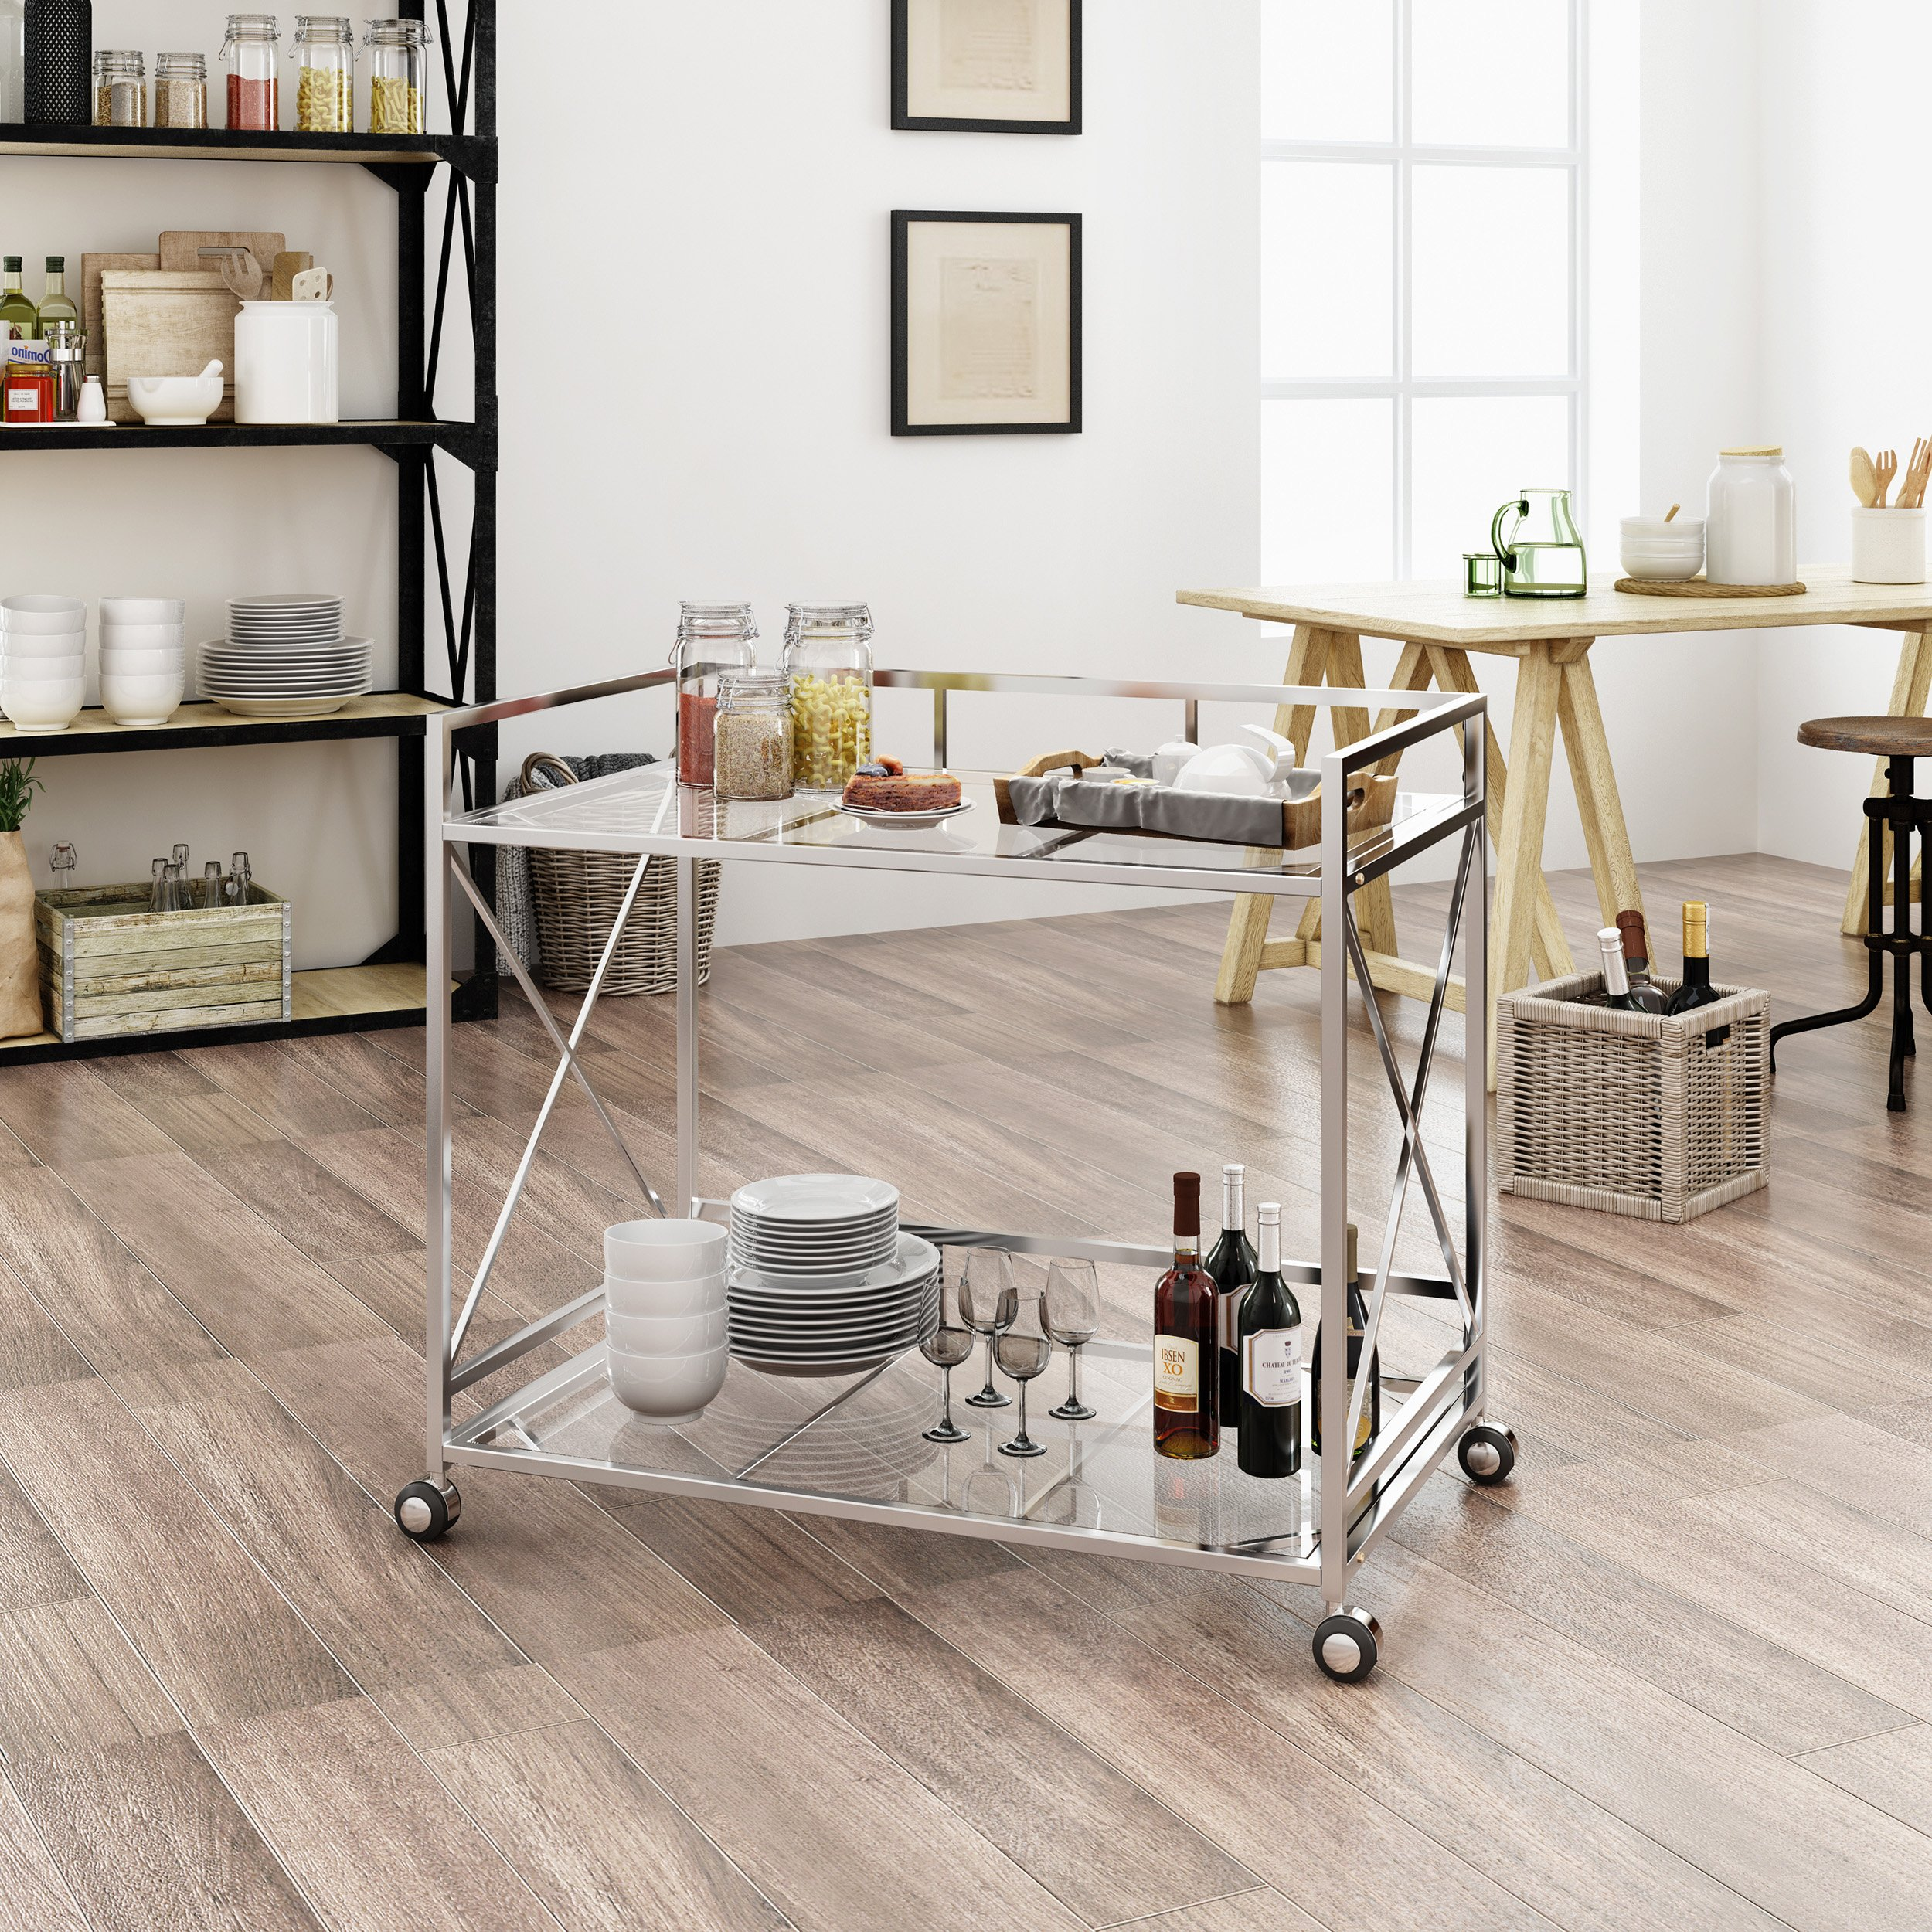 Christopher Knight Home 304469 Danae Industrial Modern Iron and Glass Bar Cart, Silver by Christopher Knight Home